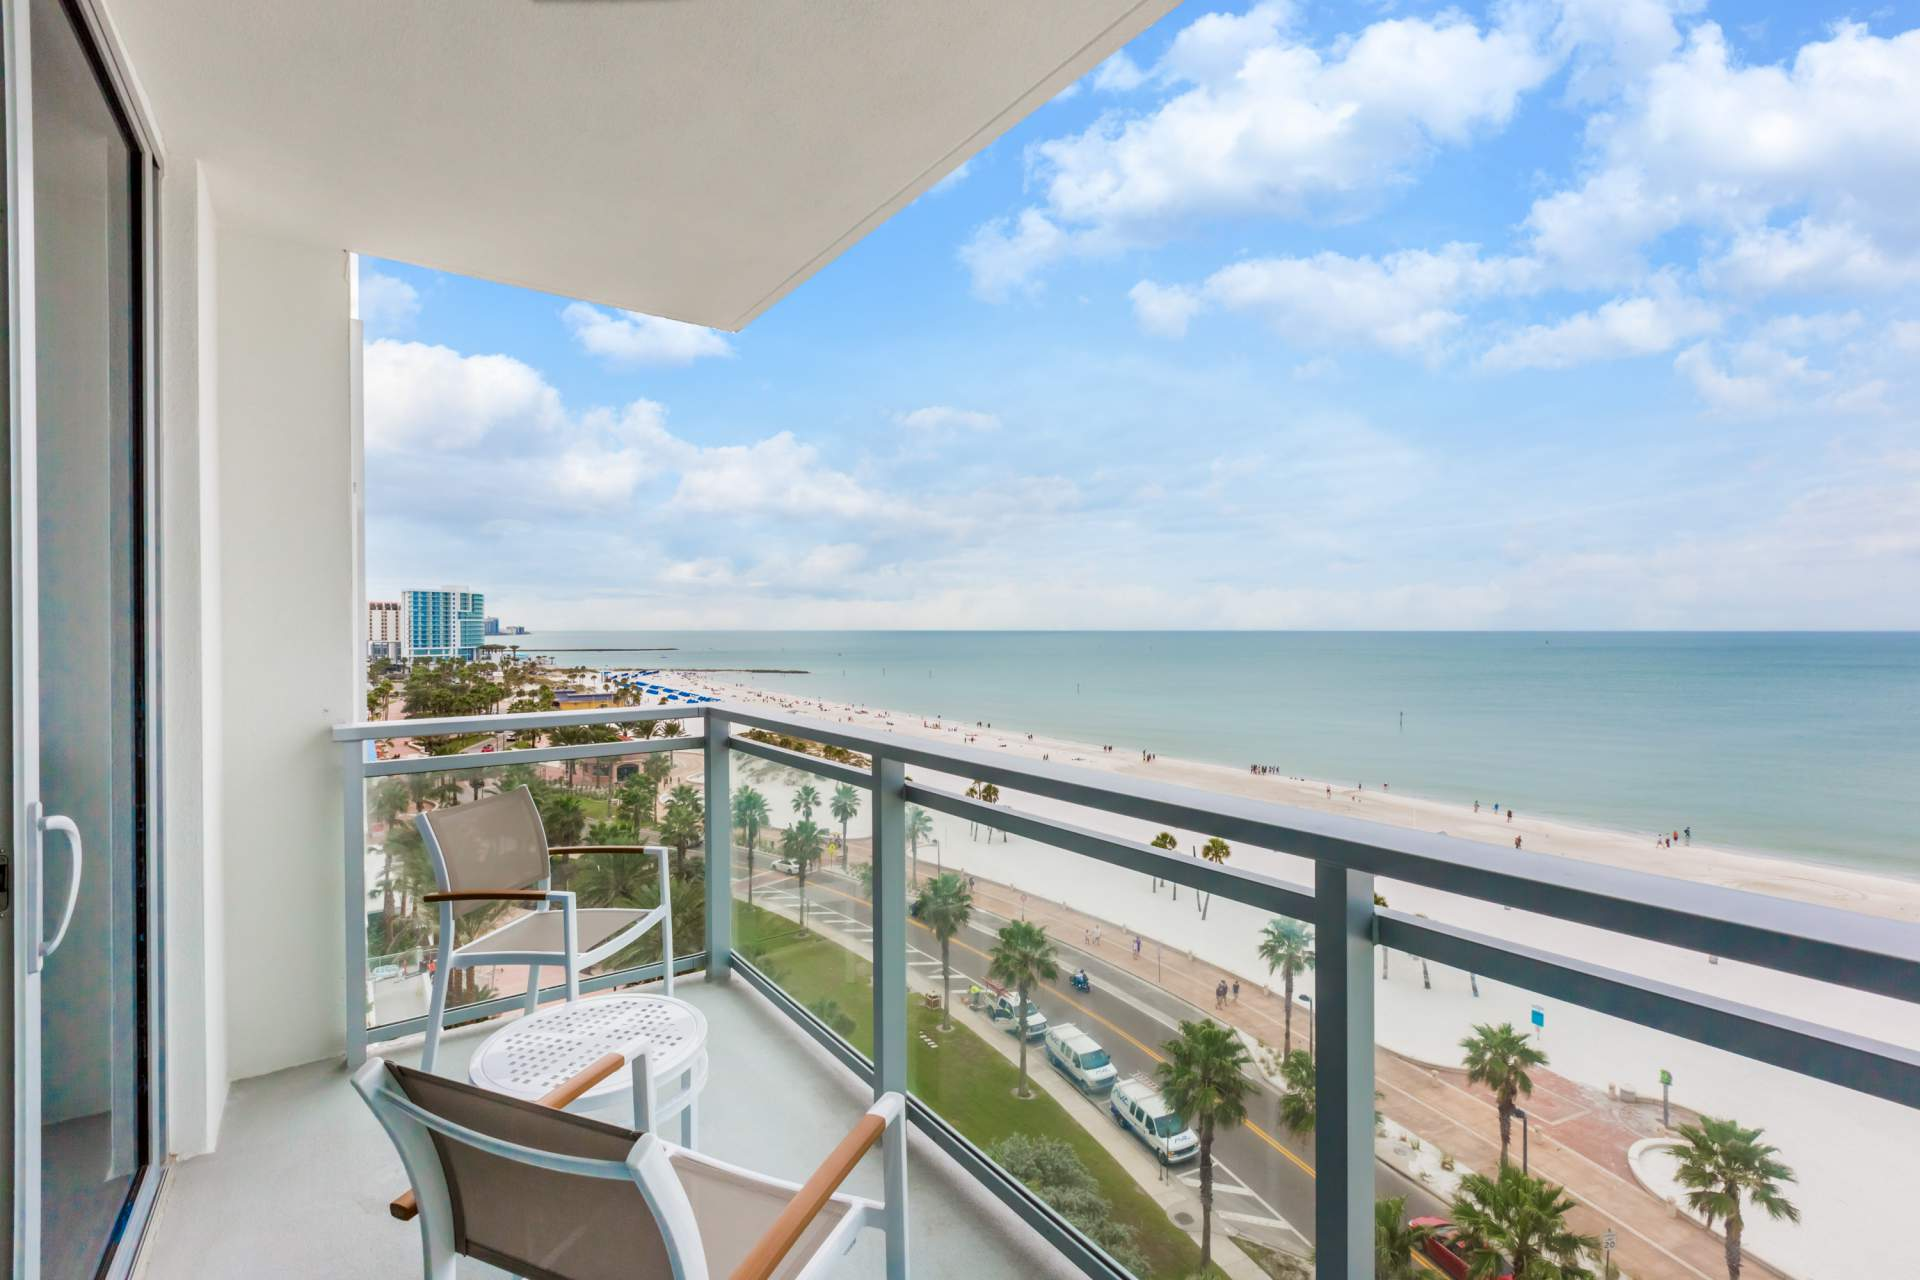 Photos of Wyndham Clearwater Beach Resort